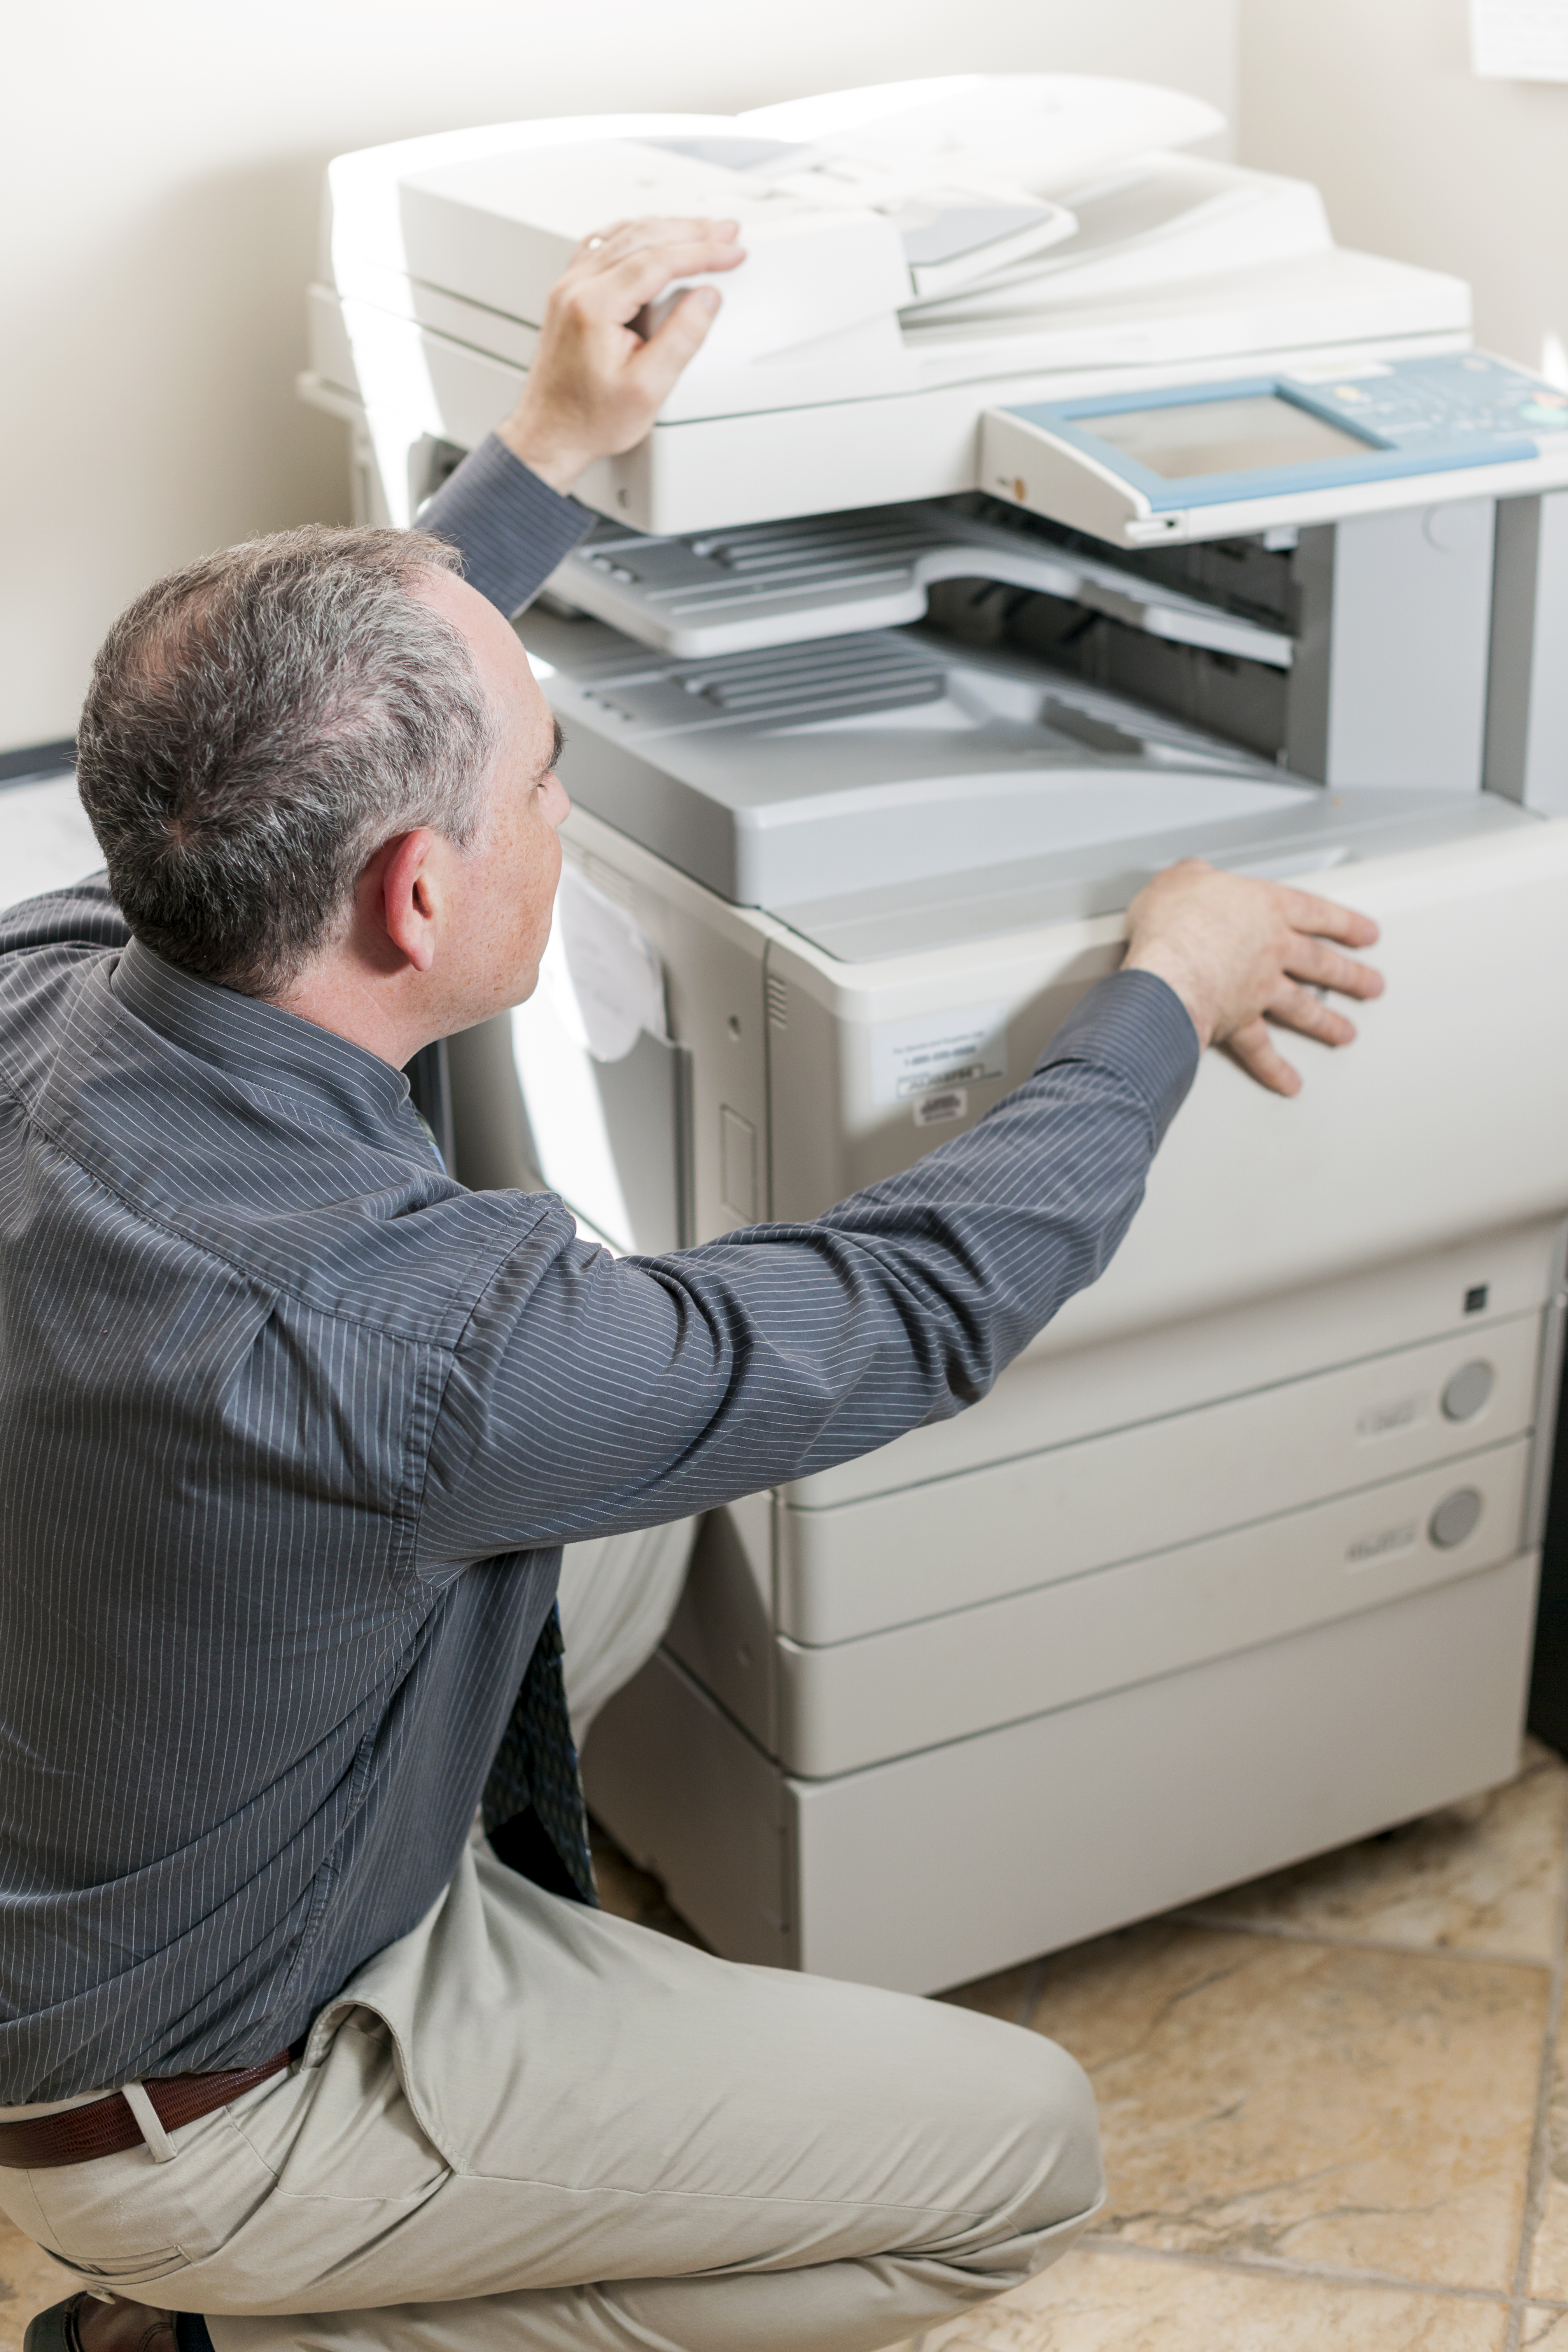 Fix Your Printer In Charleston With The Office People. Call us at 843-769-7774